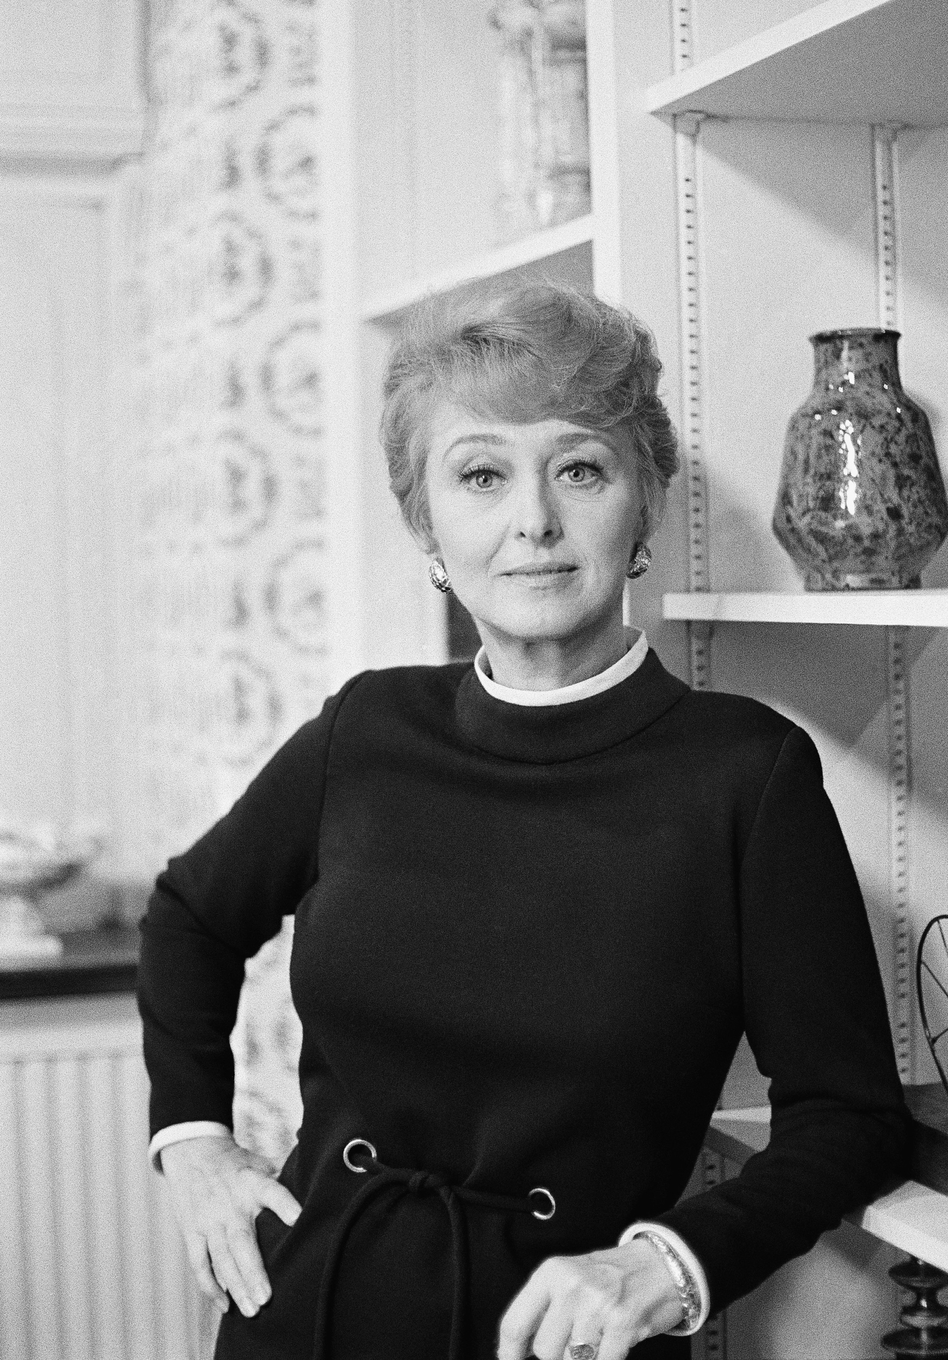 Academy Award-winning actress Celeste Holm was best known for roles in <em>Gentleman's Agreement</em>, <em>All About Eve</em> and <em>Oklahoma!</em>